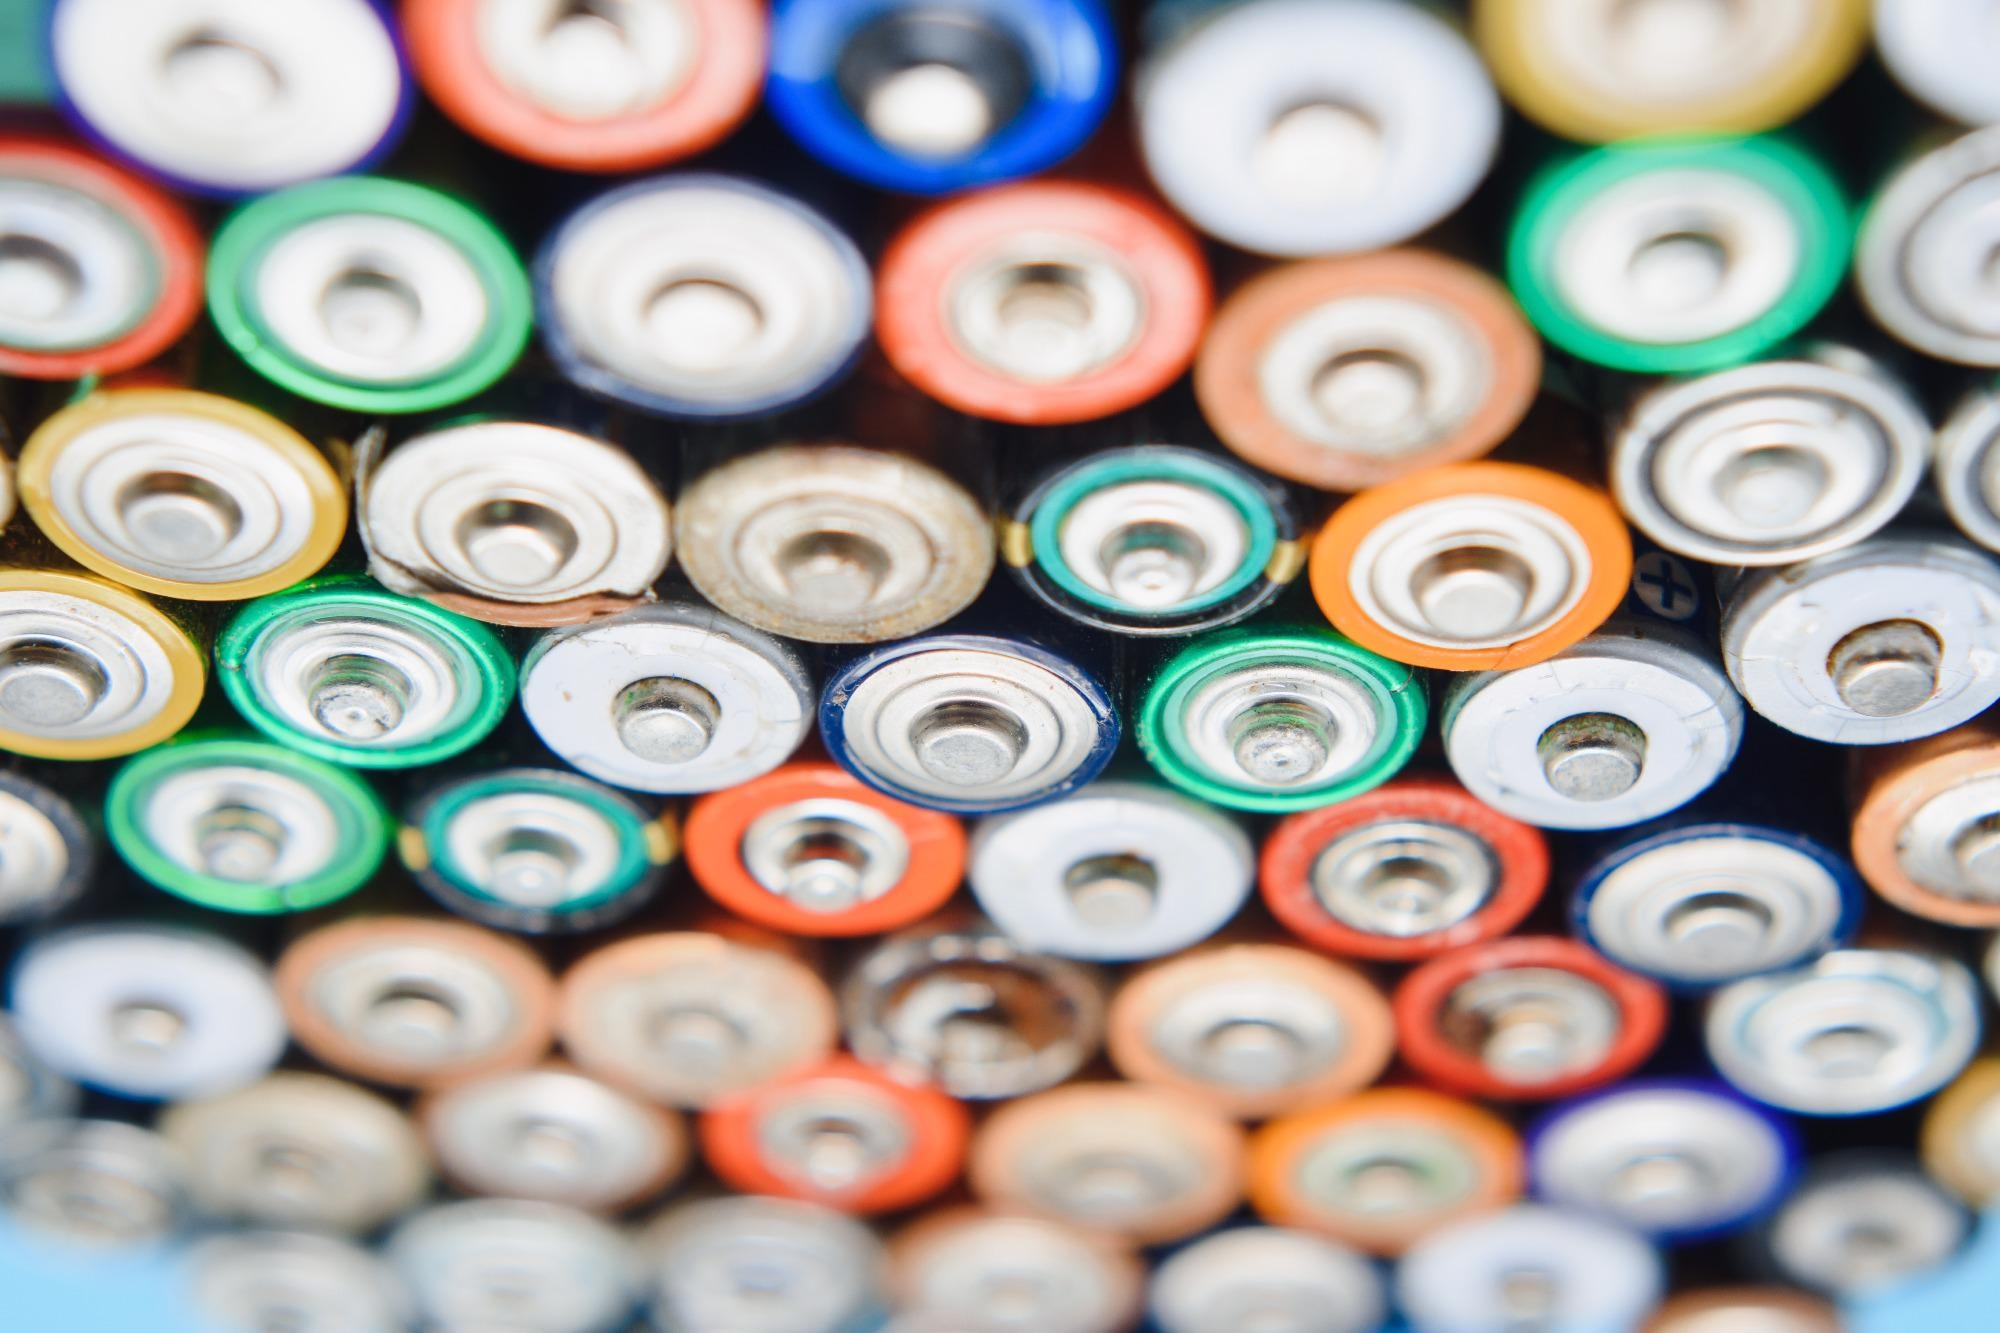 New Battery can Charge 10 Times Faster than Traditional Lithium-Ion Battery